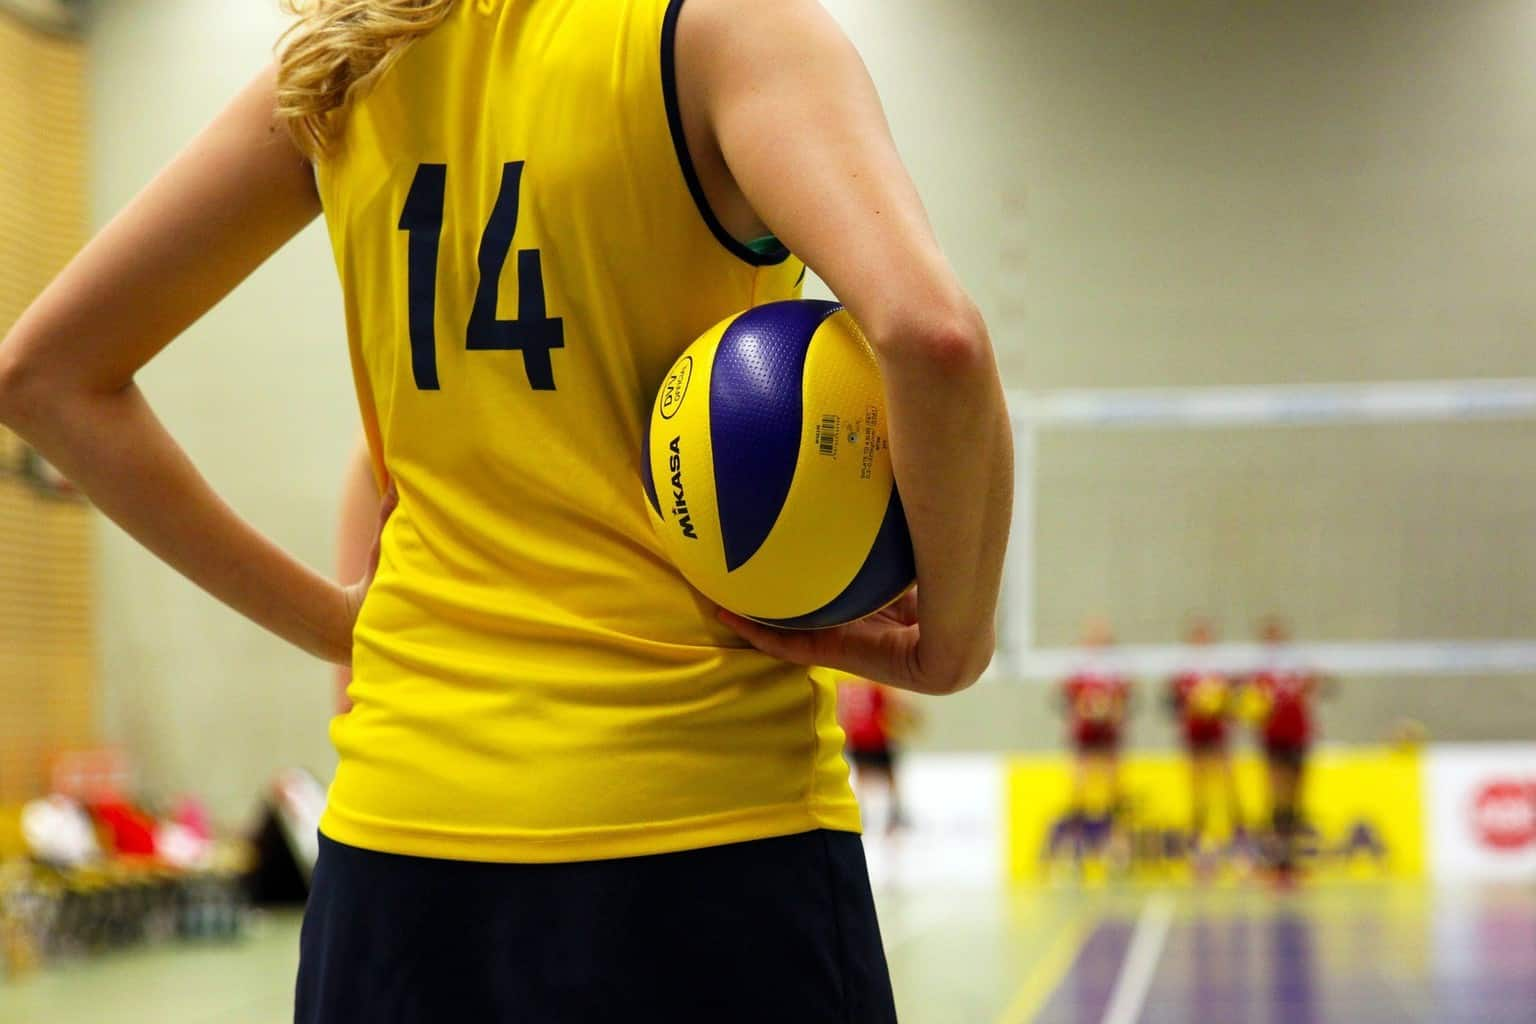 30 Fun Facts About Volleyball You Probably Didn't Know ...